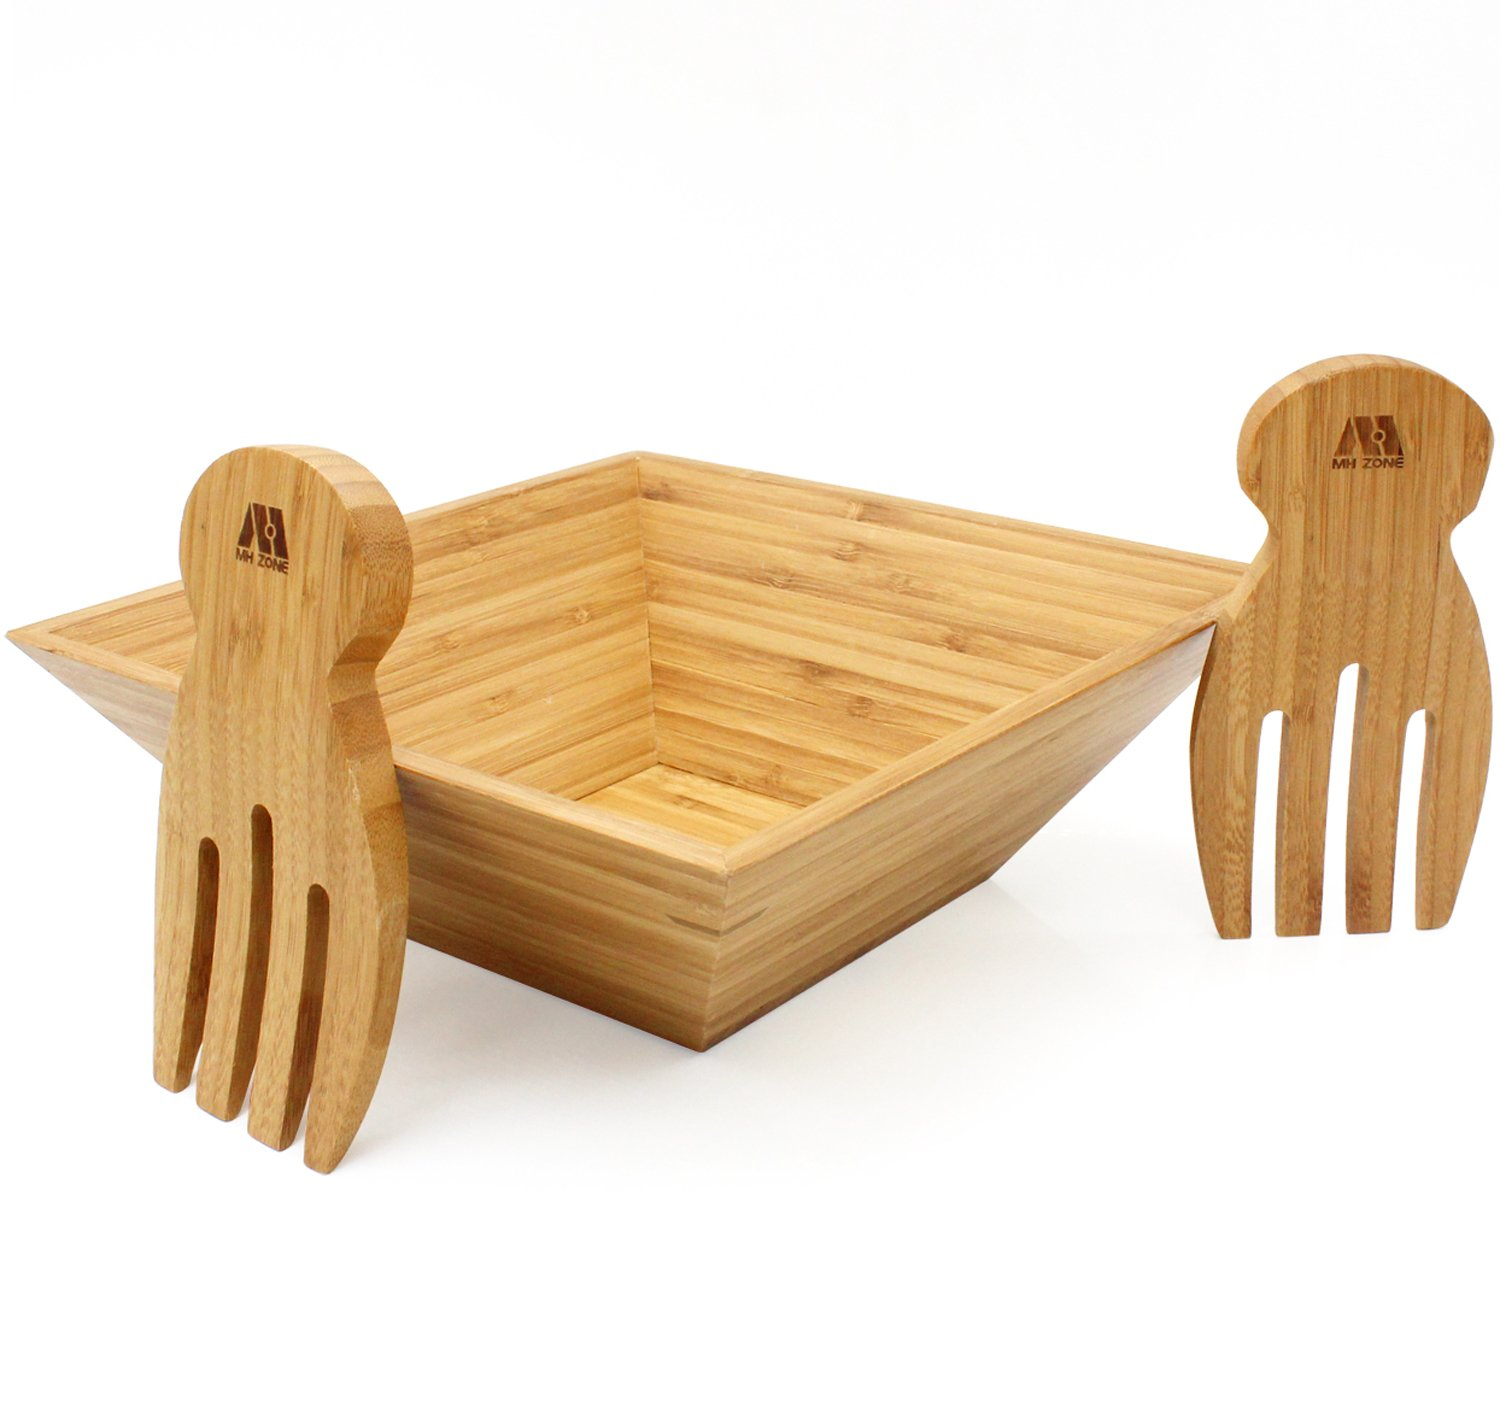 MH ZONE Bamboo Salad Bowl Set with Serving Hands, includes large square bowl and matching salad servers, perfect size for serving 4-6 salad portions